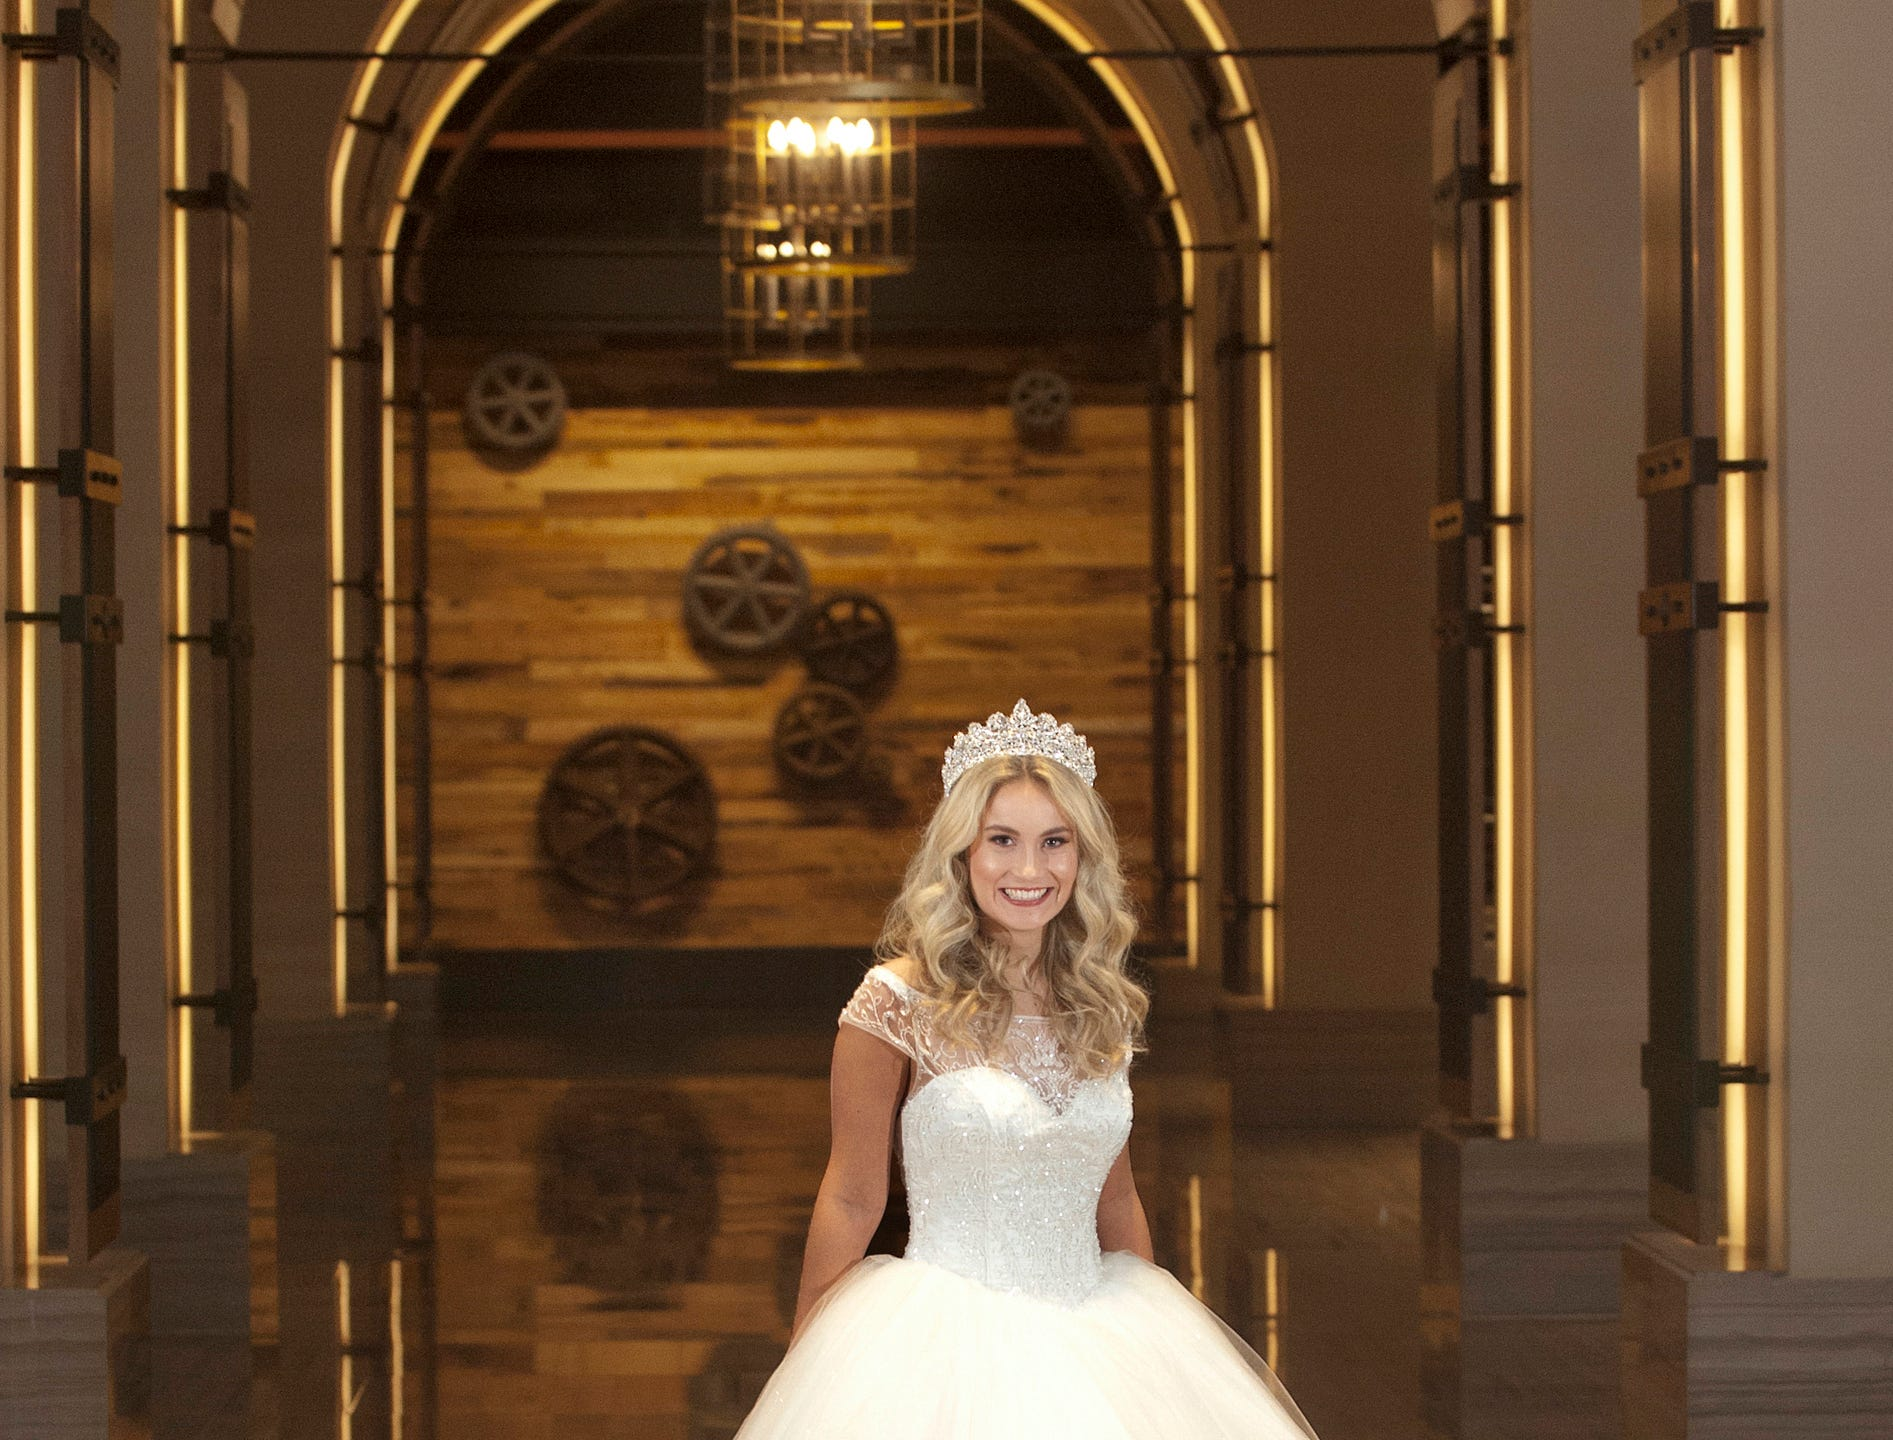 Kentucky Derby Festival Princess Allison Spears, 21, of Catlettsburg, Ky., is a junior at the University of Kentucky majoring in pre-law and neuroscience. She was posing in the arched hallway off the Omni Louisville Hotel lobby. 06 January 2019